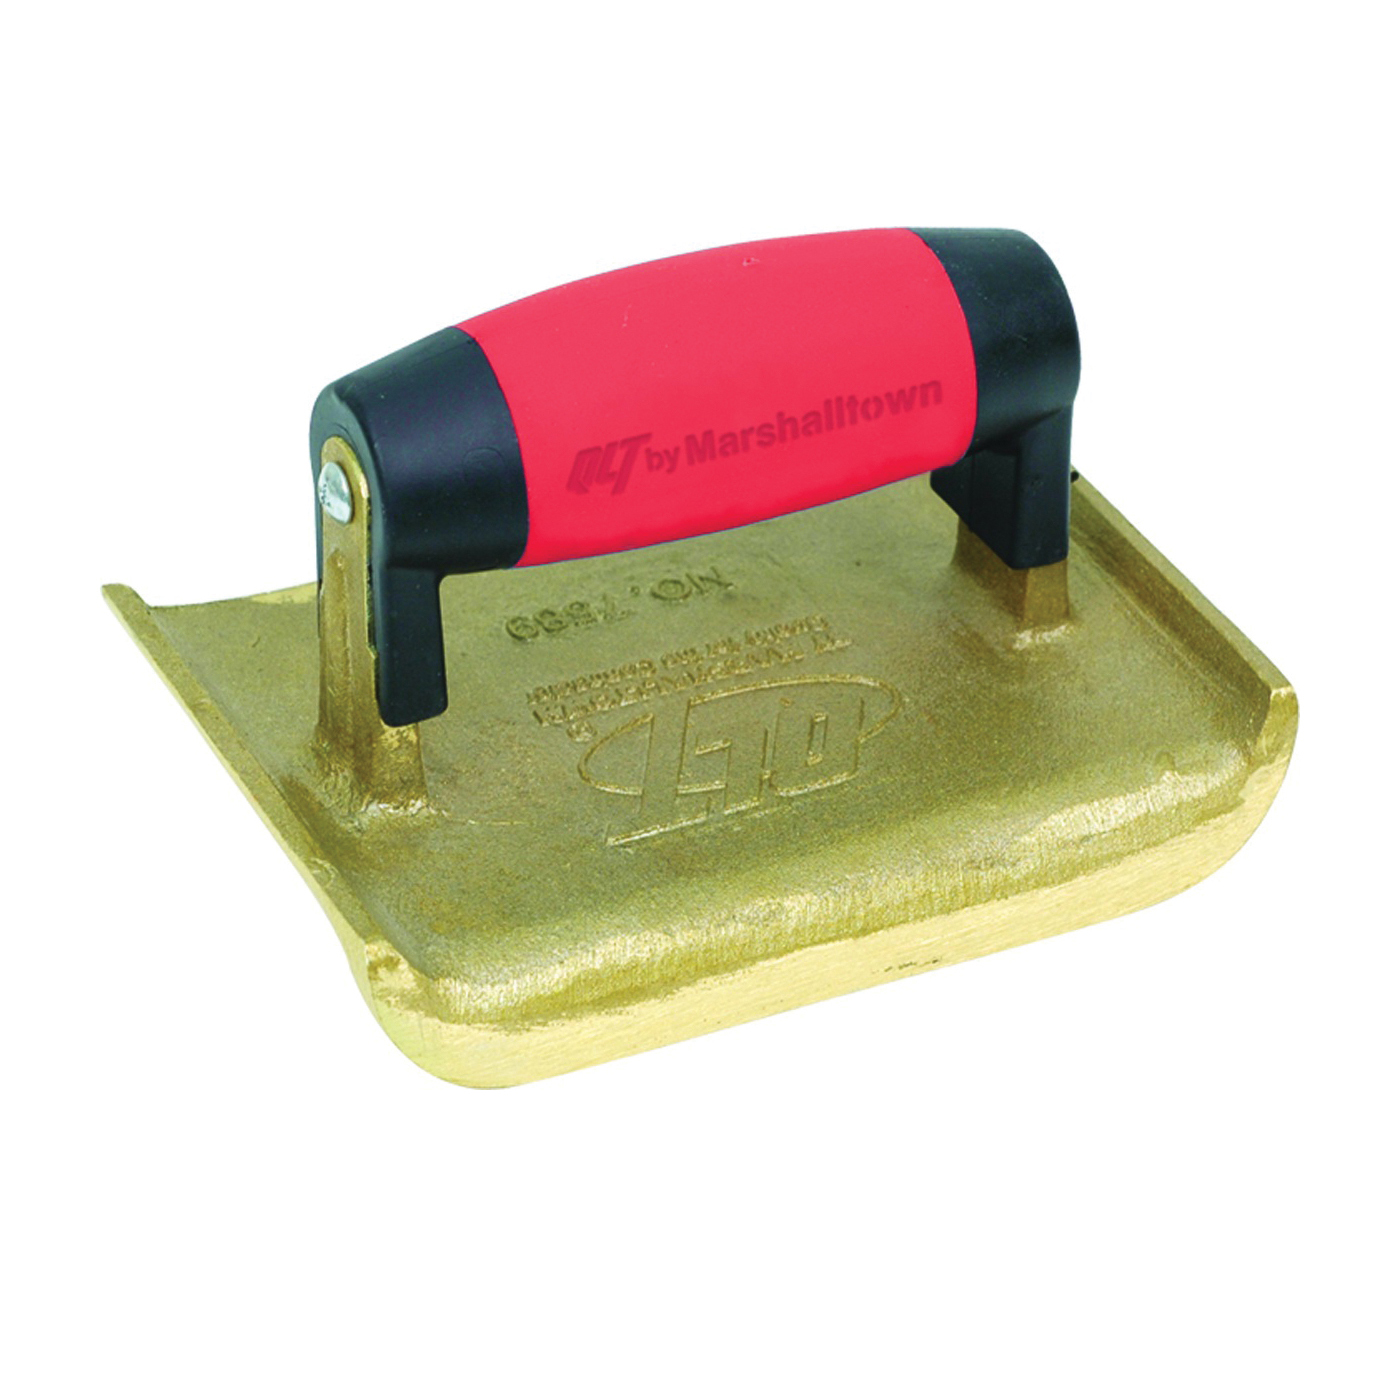 Picture of Marshalltown 7588 Hand Edger, 6 in L Blade, 2-3/4 in W Blade, Bronze Blade, 5/8 in Lip, 1/4 in Lip Radius